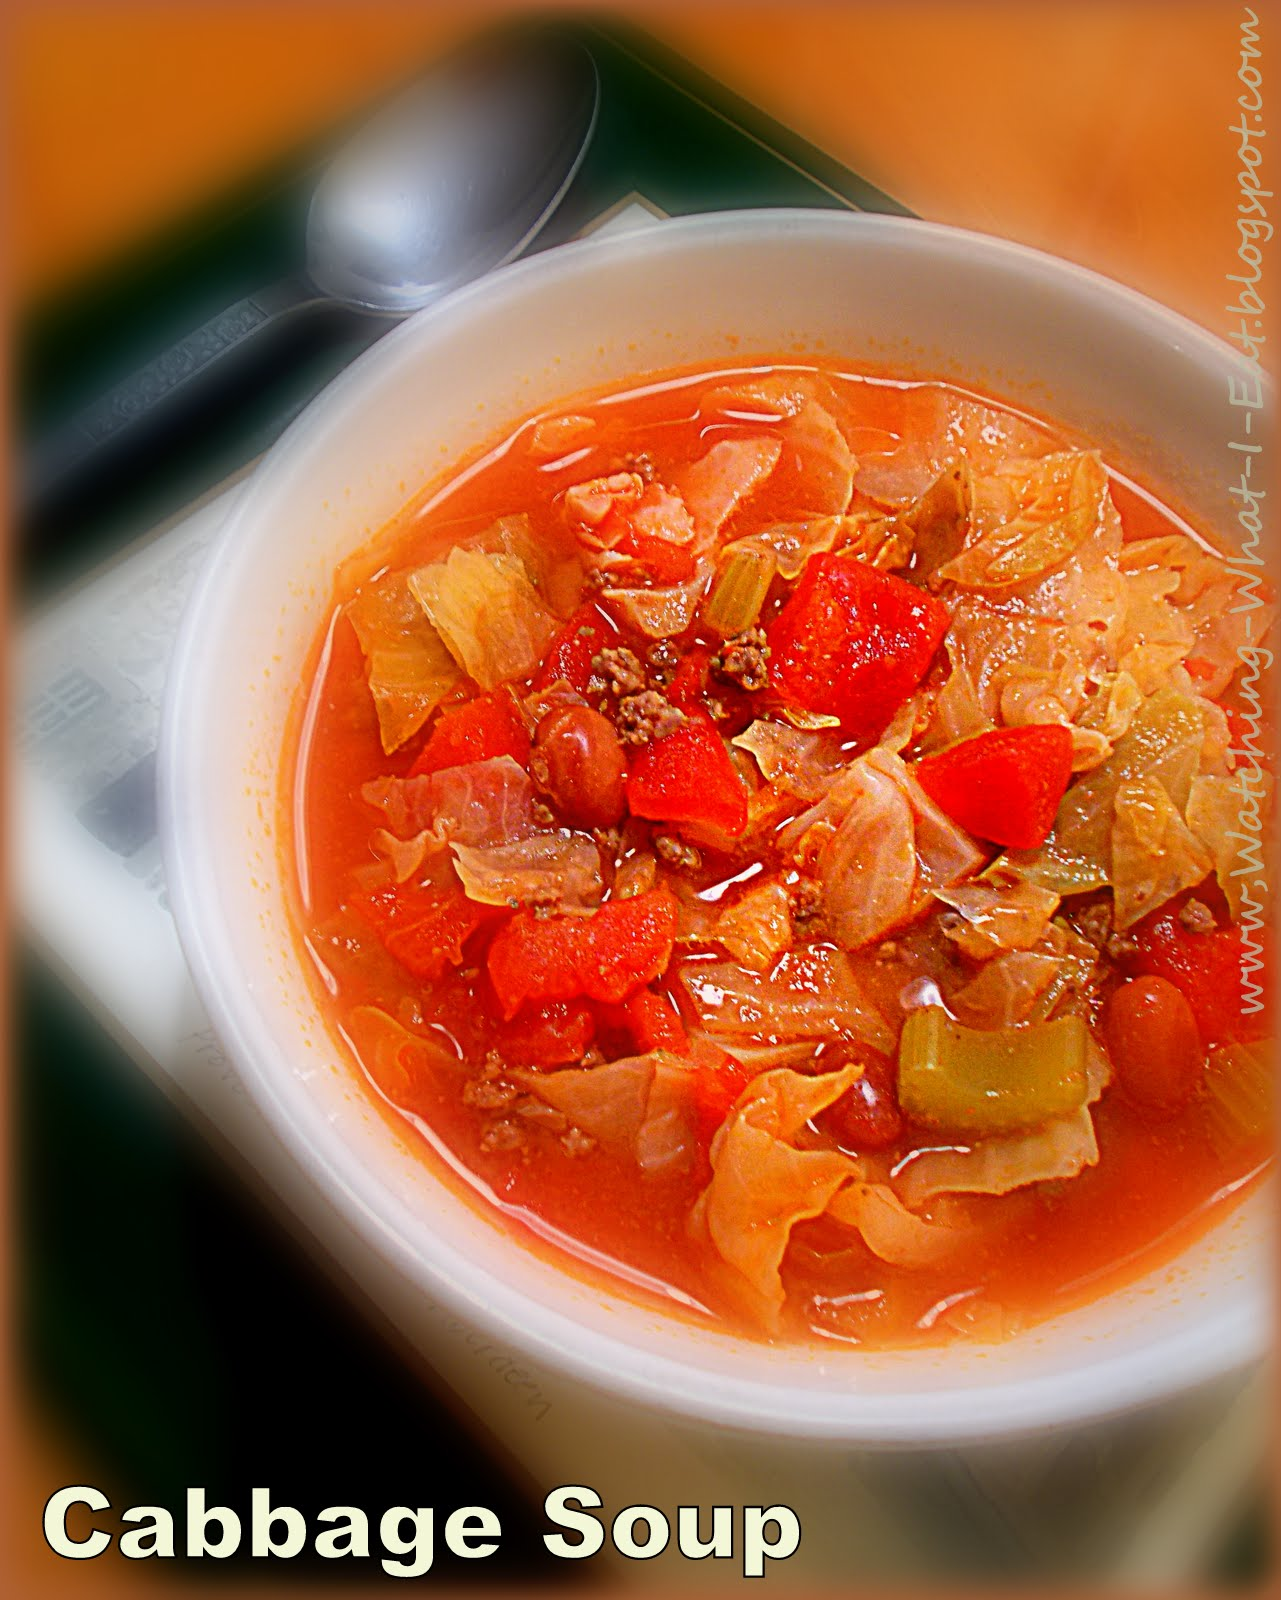 Simple to make a wonderful soup for the chilly nights of autumn